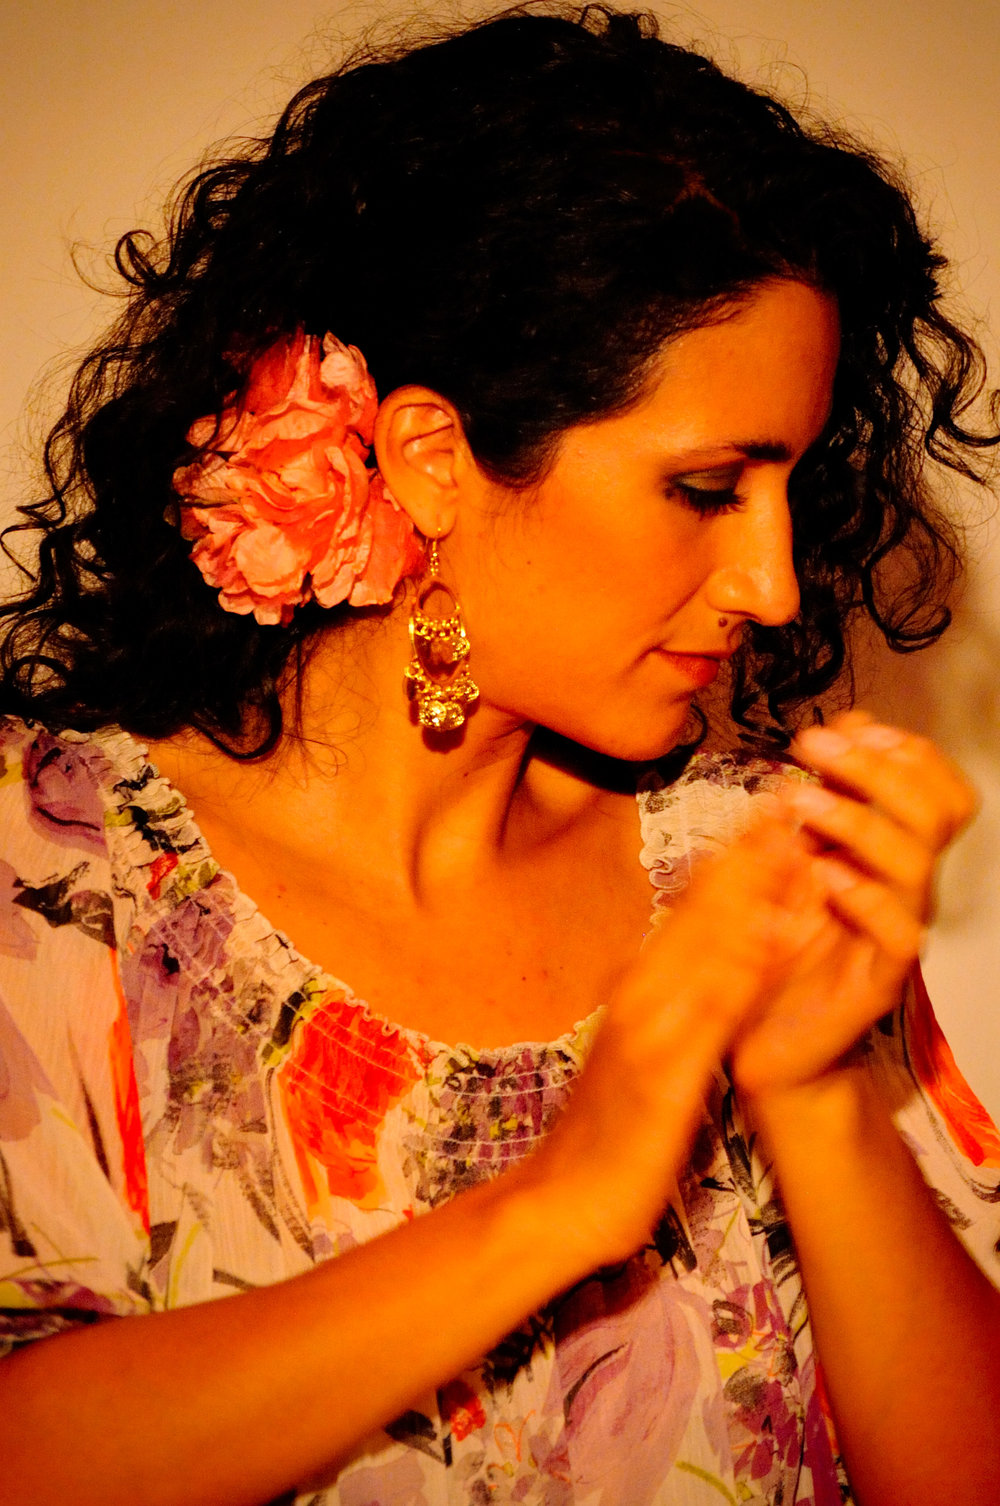 Barbara Martinez was born in Venezuela and grew up in New York singing opera, studying musical theater and dance. She is a renowned flamenco dancer and singer and has performed with companies such as Andrea Del Conte Danza Espana. She performed in Carmen and La Traviata for The Met Opera. In 2008, she studied cante on scholarship at the Cristina Heeren Foundation in Seville, Spain and in 2010, was honored to be invited to sing at Carnegie Hall to participate in a series put together by William Maselli, featuring world music singers. Today, she spends her time singing for flamenco dance companies like Carlota Santana Flamenco Vivo, Pasion y Arte, A Palo Seco, Sol y Sombra. She also performs as a soloist in NYC, and with a full sextet of flamenco and jazz musicians, in a lush and eclectic repertoire of flamenco, Latin, Sephardic, Middle Eastern and jazz, always interspersed with dance.